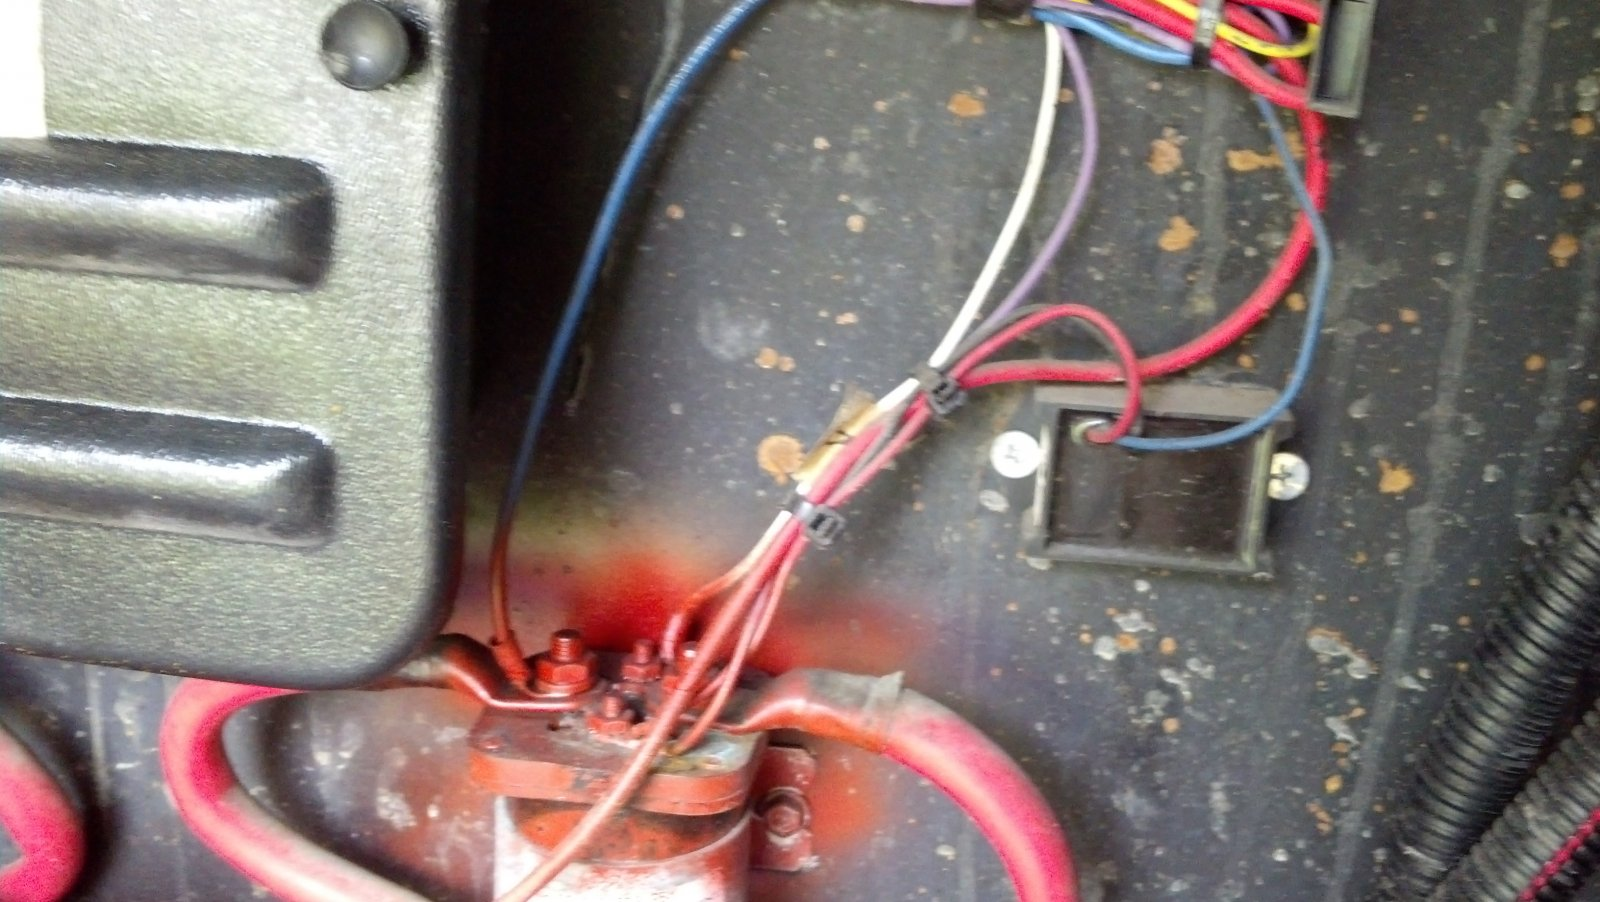 6v House Batteries Are Deformed After 6 Months Use Page 3 Irv2 Club Open Roads Forum Why Should I Switch To Golf Cart Click Image For Larger Version Name Img 20130829 132118 433 Views 107 Size 2255